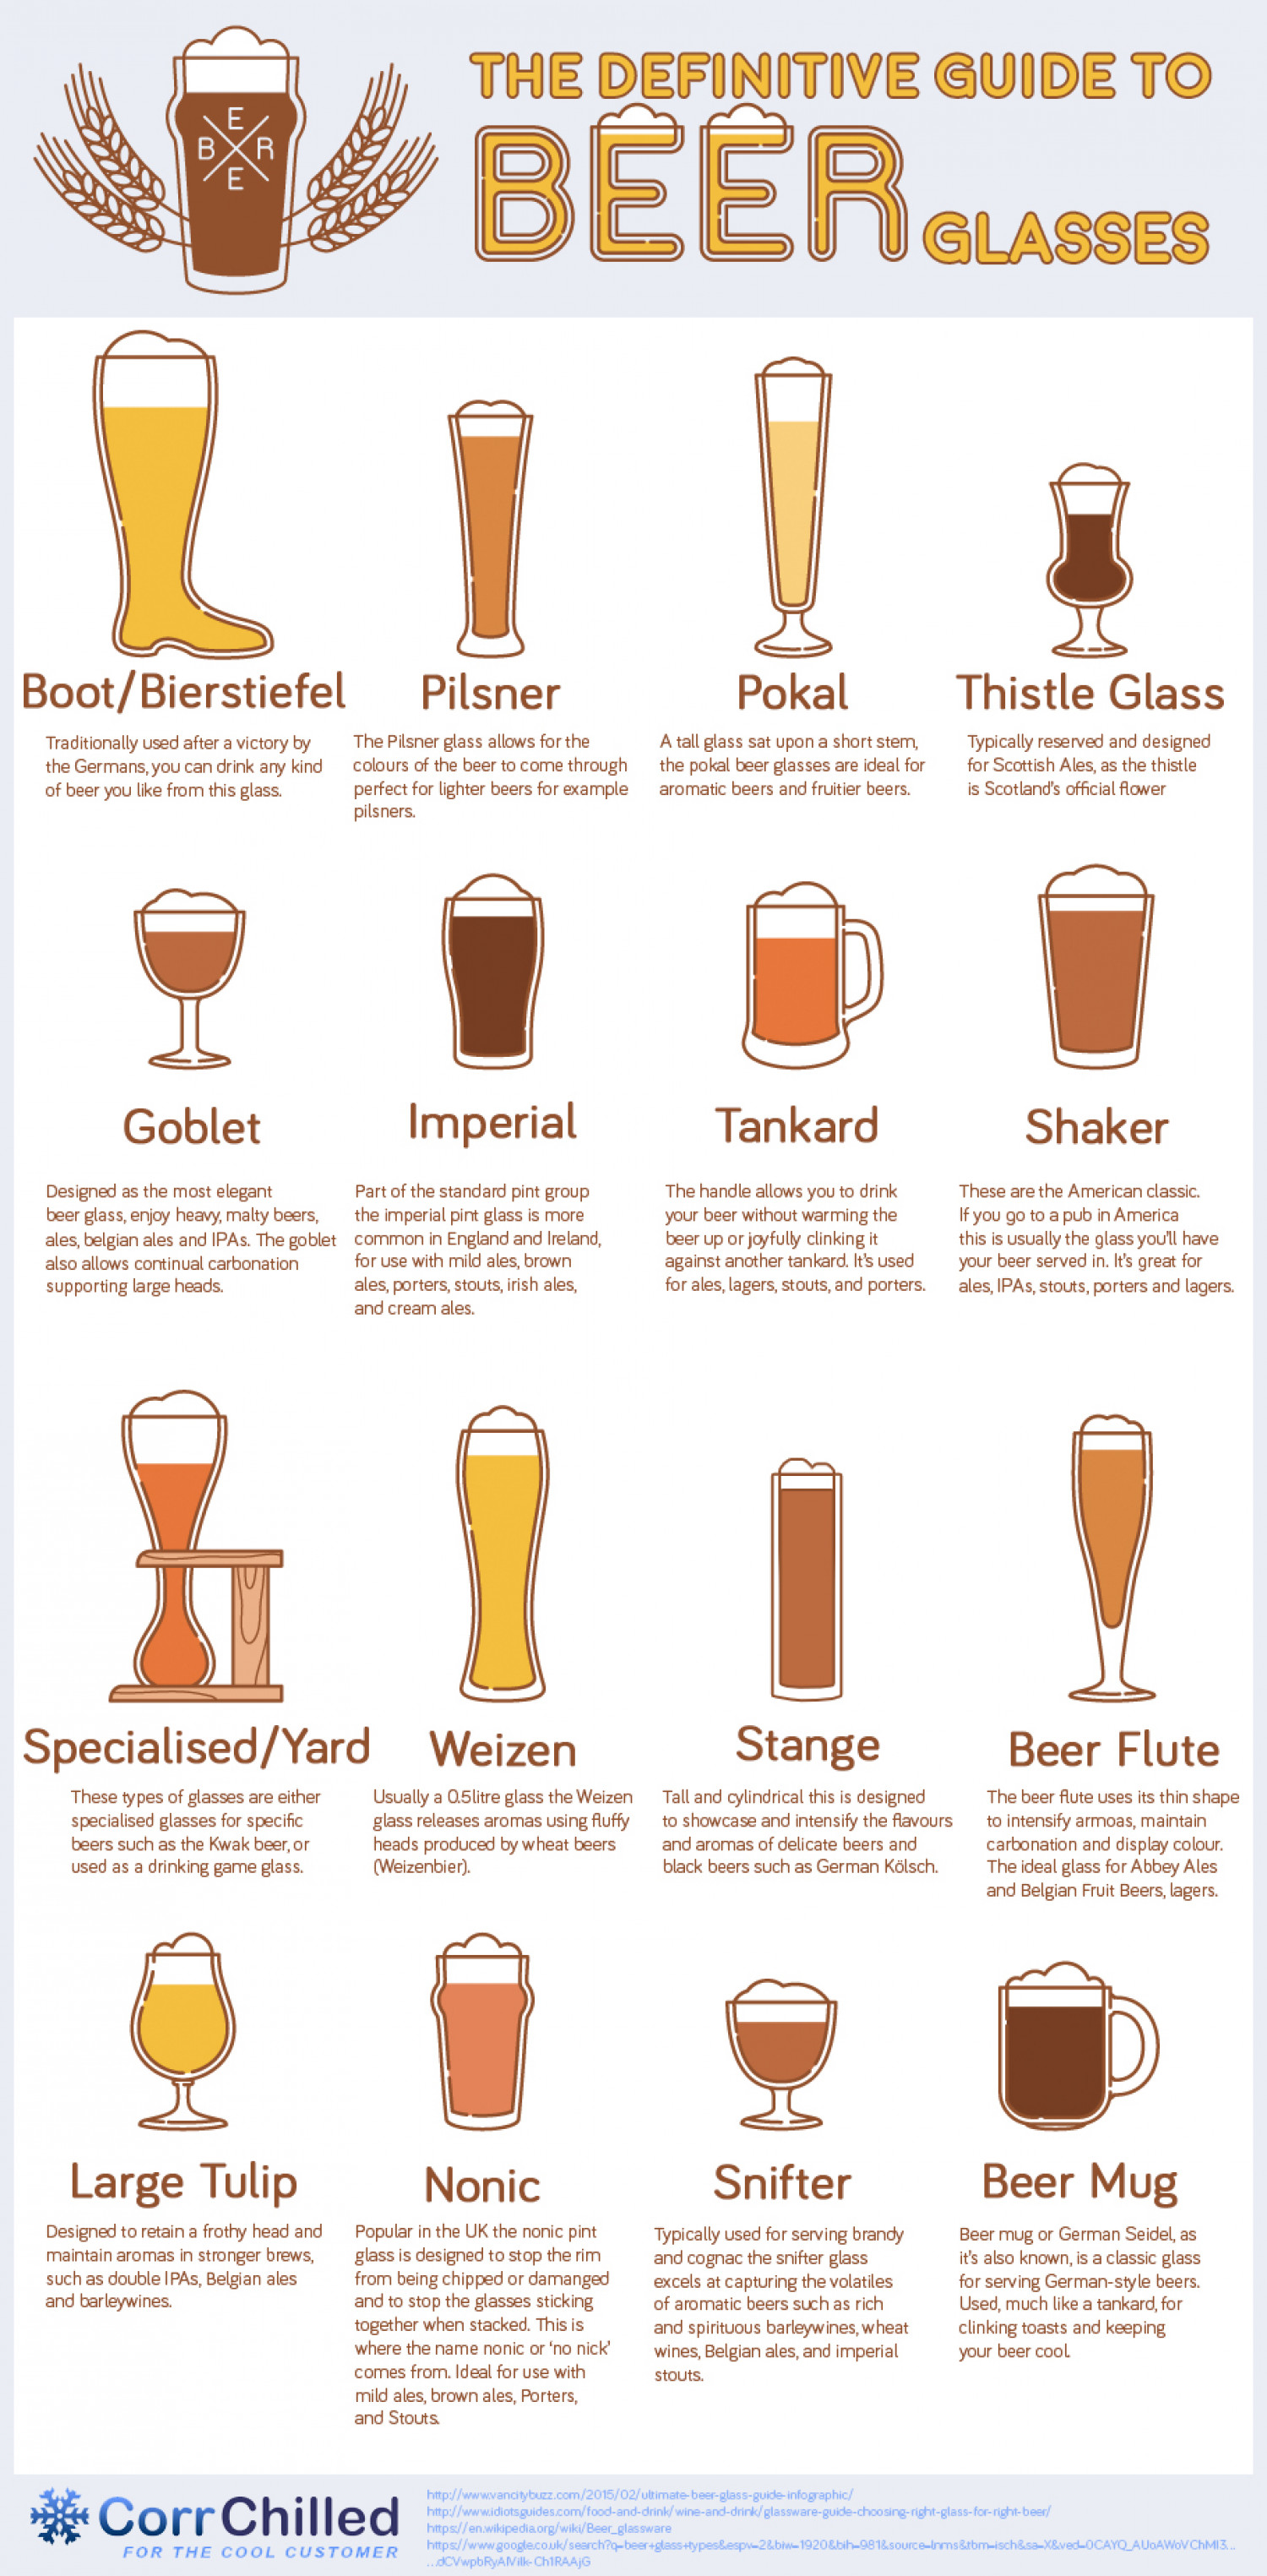 how to use beers law